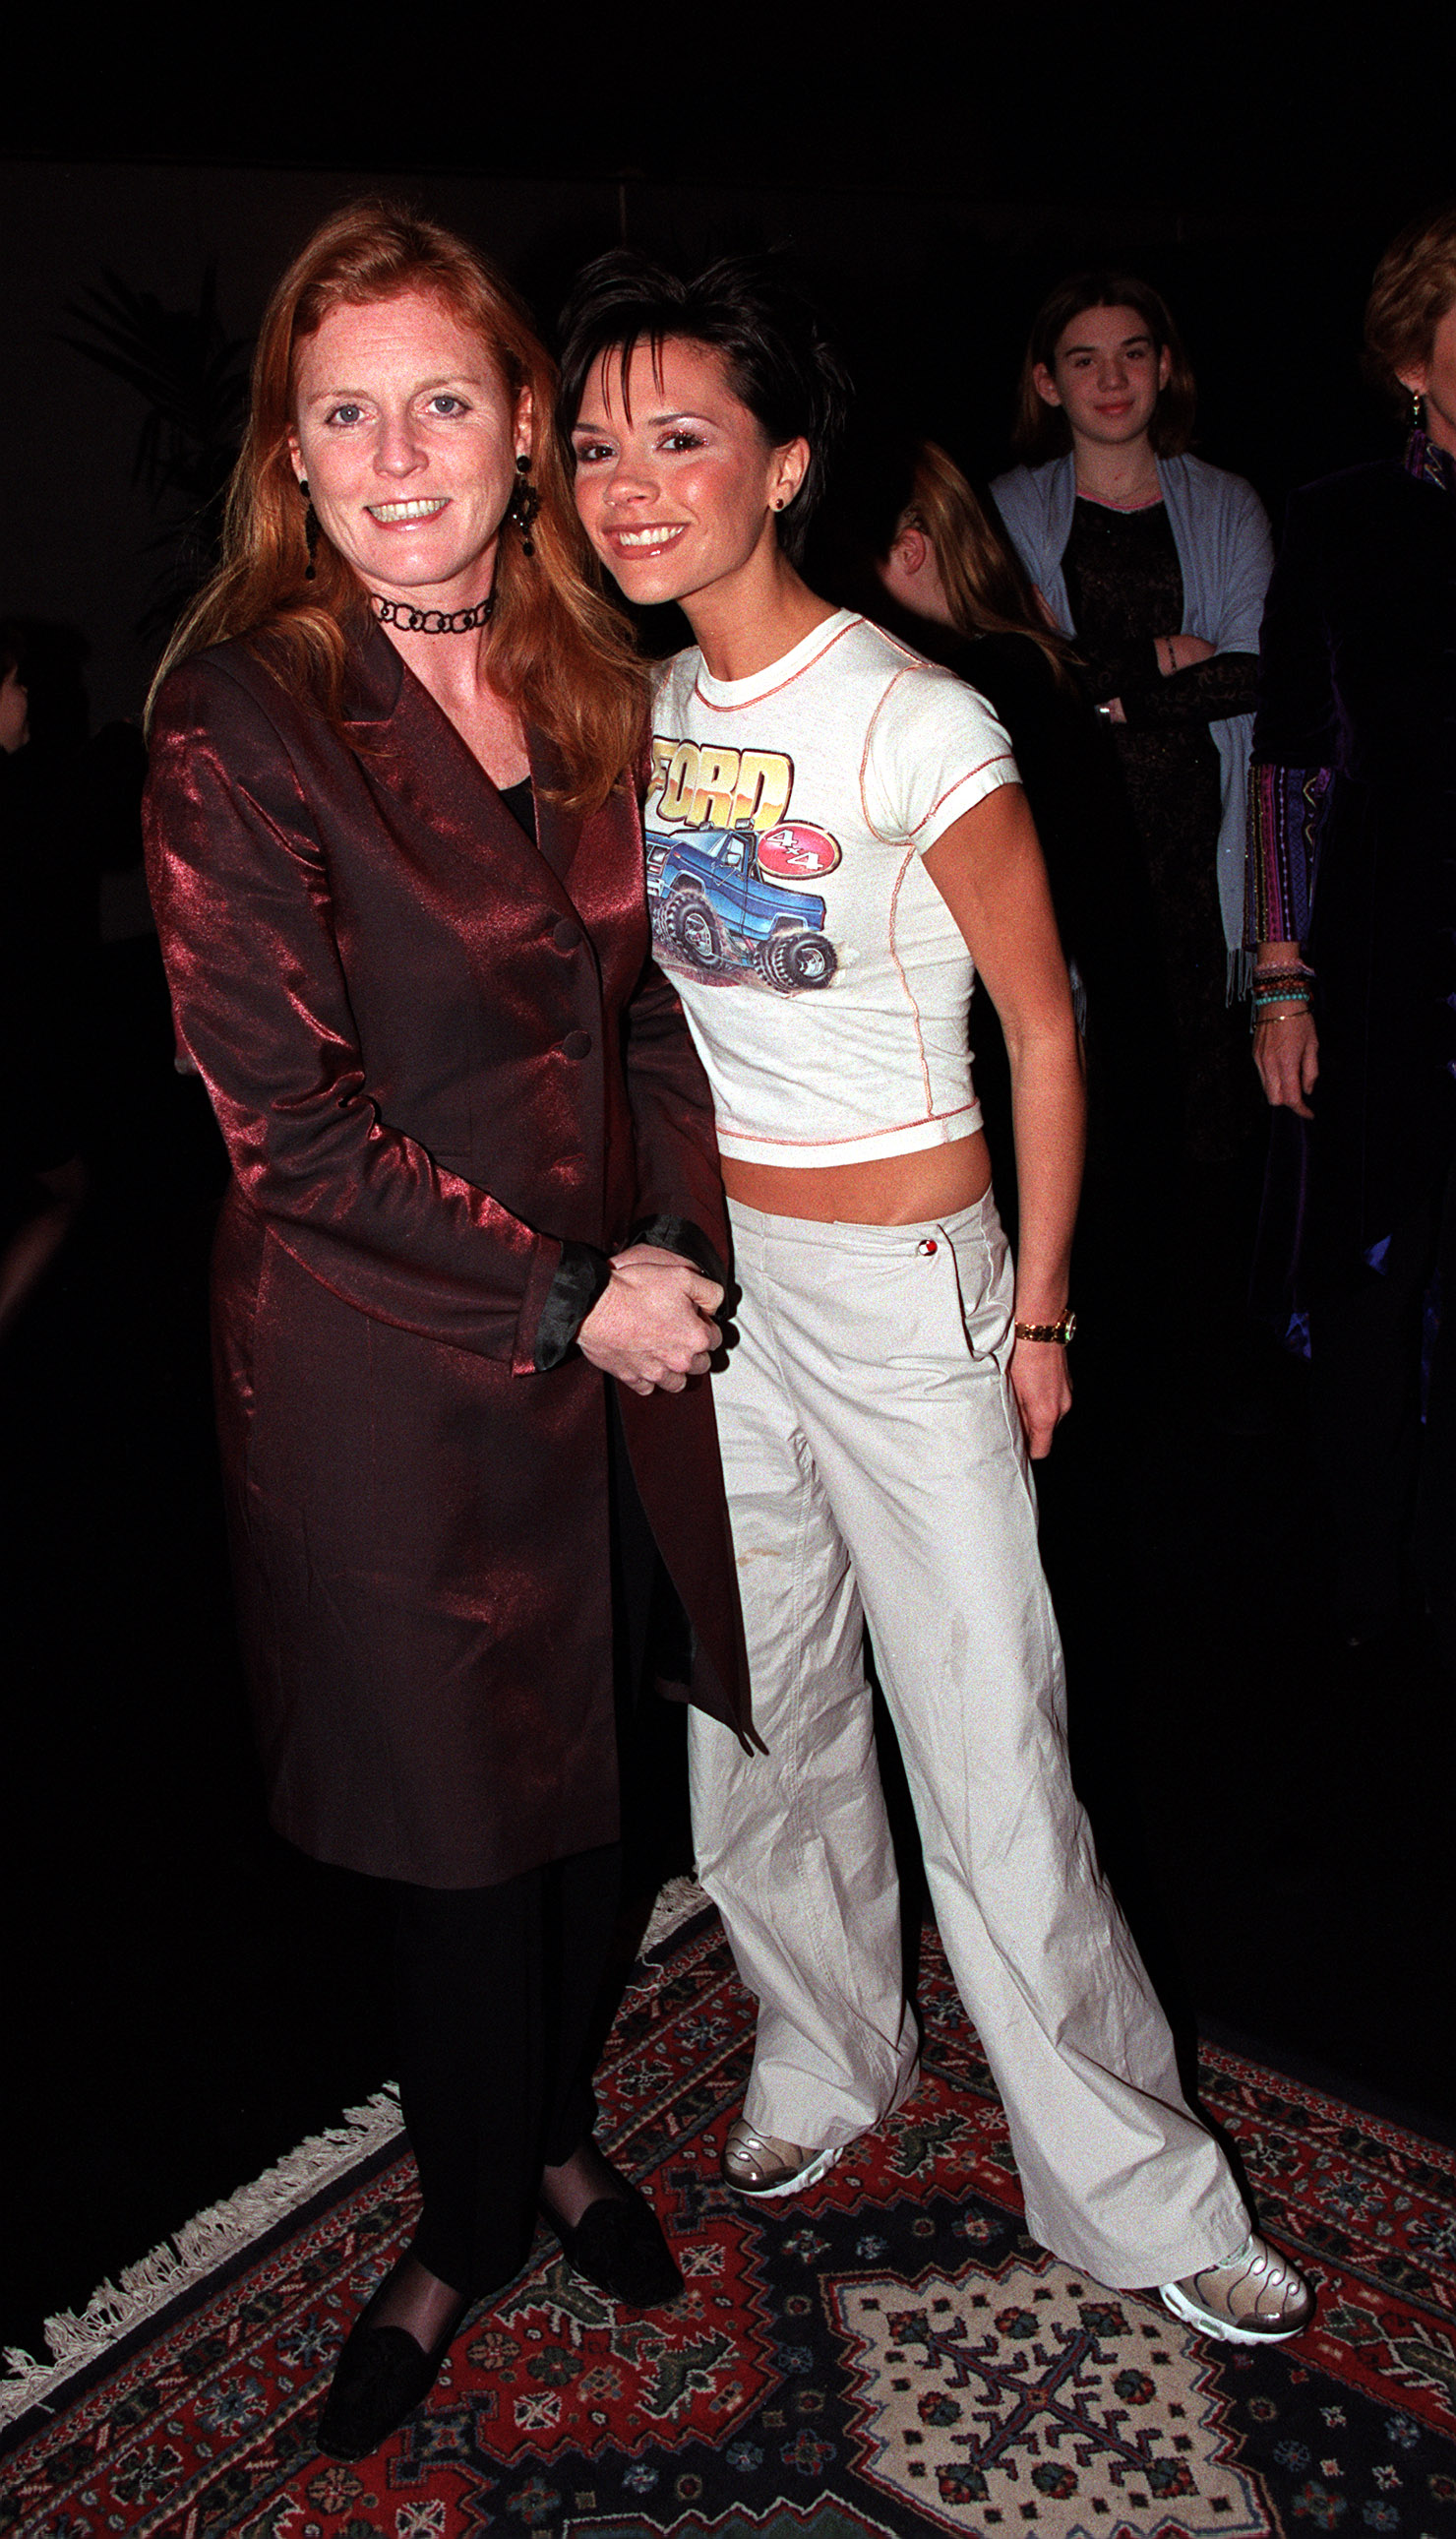 <p>Victoria Beckham with the former Duchess of York, Sarah Ferguson backstage at a Spice Girls concert in London, December 1999</p> <p> </p>